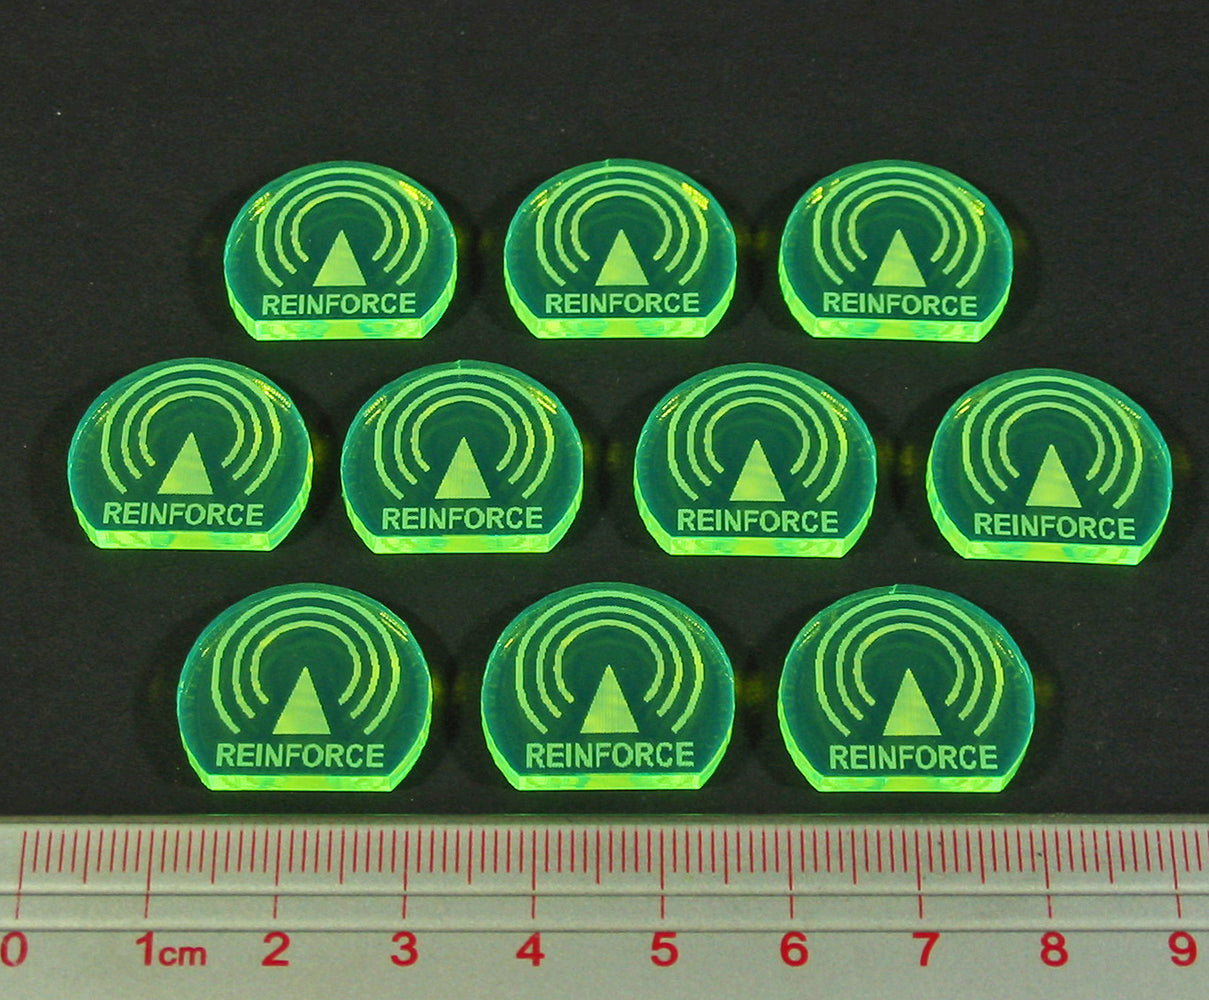 Space Fighter Reinforce Tokens, Fluorescent Green (10) - LITKO Game Accessories